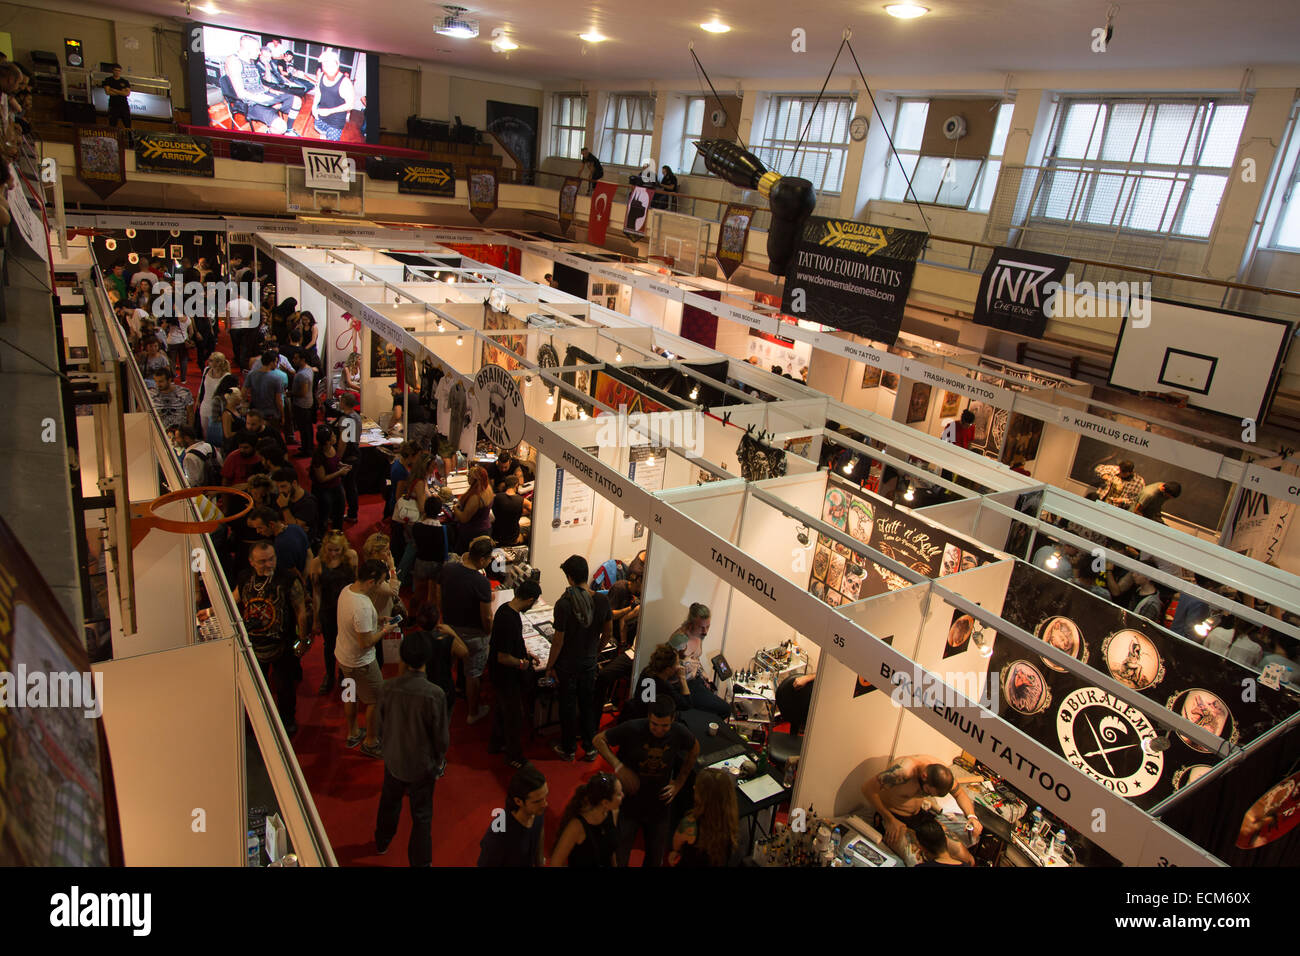 ISTANBUL TURKEY SEPTEMBER 20 2014 Tattooists meet Istanbul Tattoo Convention which held Kadikoy. - Stock Image